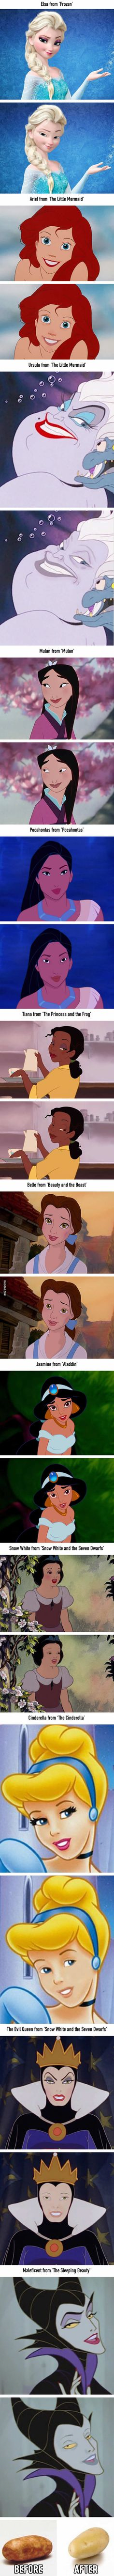 This Is What Disney Characters Look Like Without Makeup - 9GAG